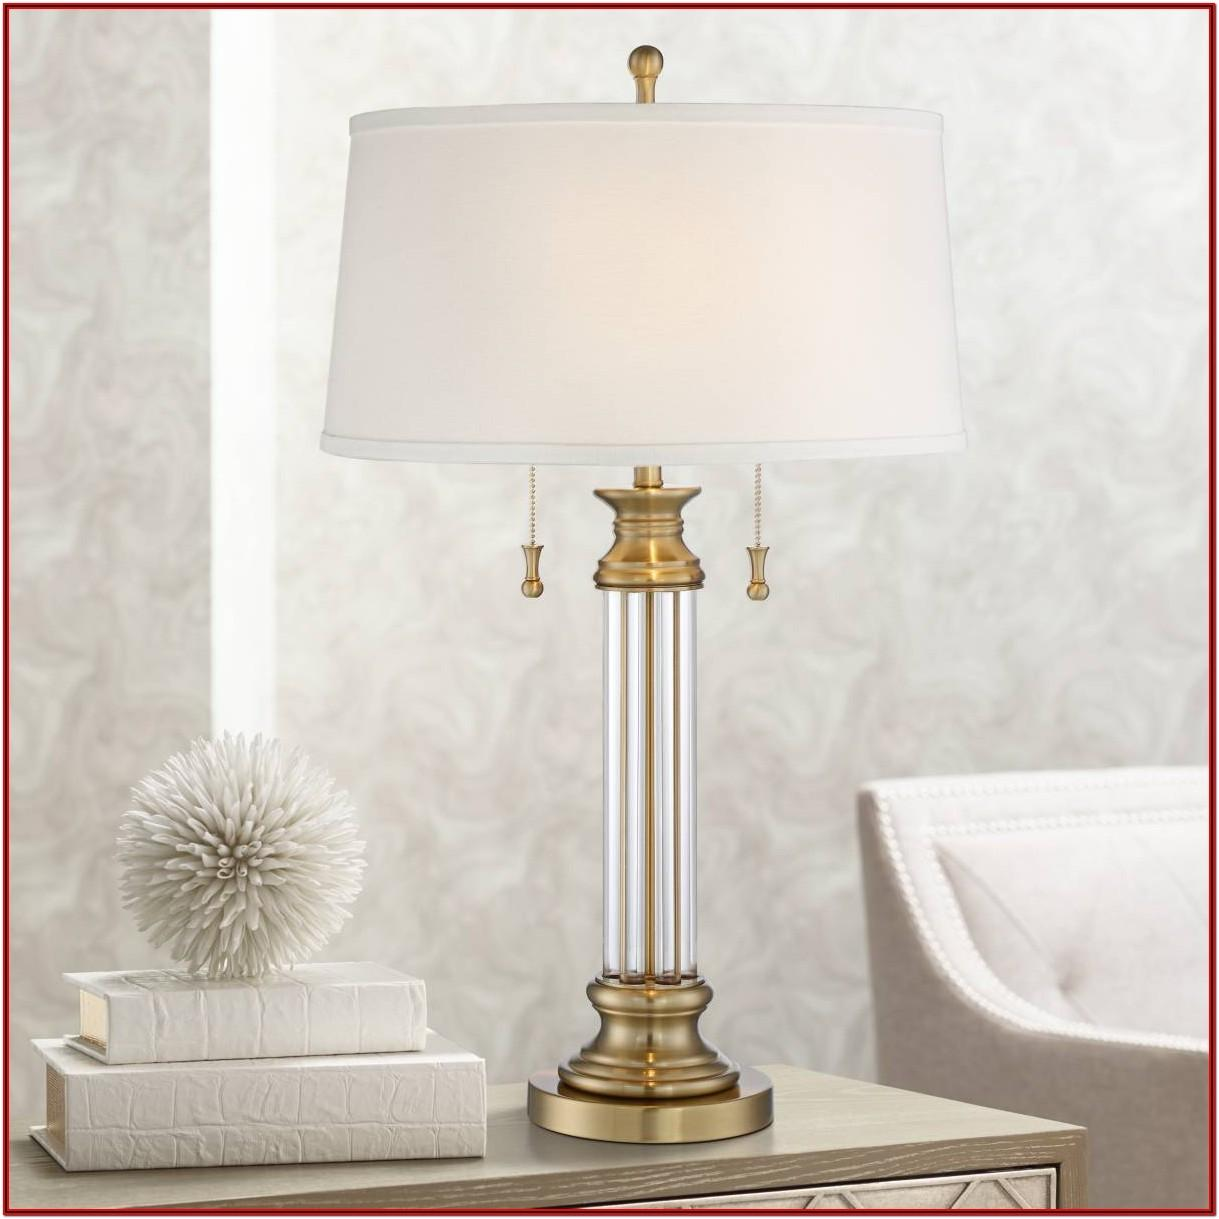 Living Room Crystal Table Lamps